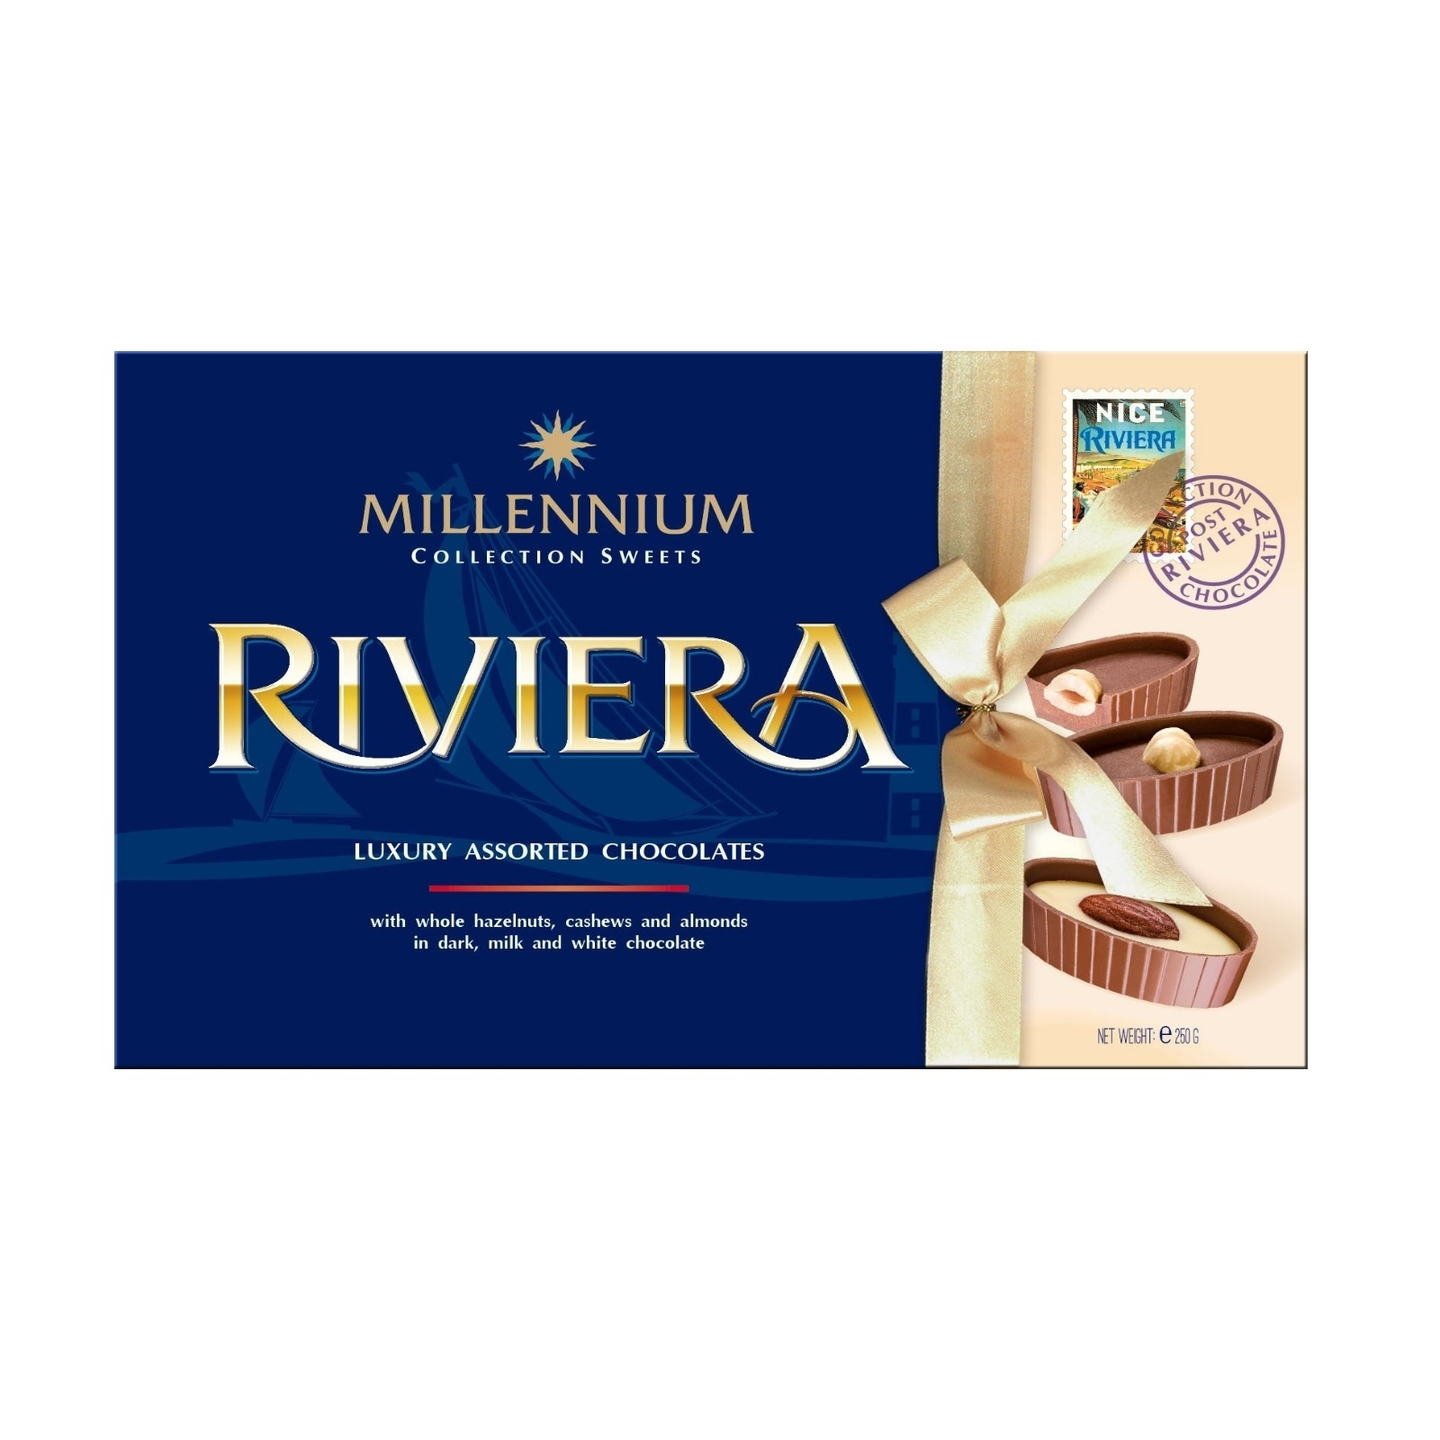 Riviera Premium Assorted Chocolate with Whole Hazelnuts, Cashews and Almonds in Milk, Dark and White Chocolate.